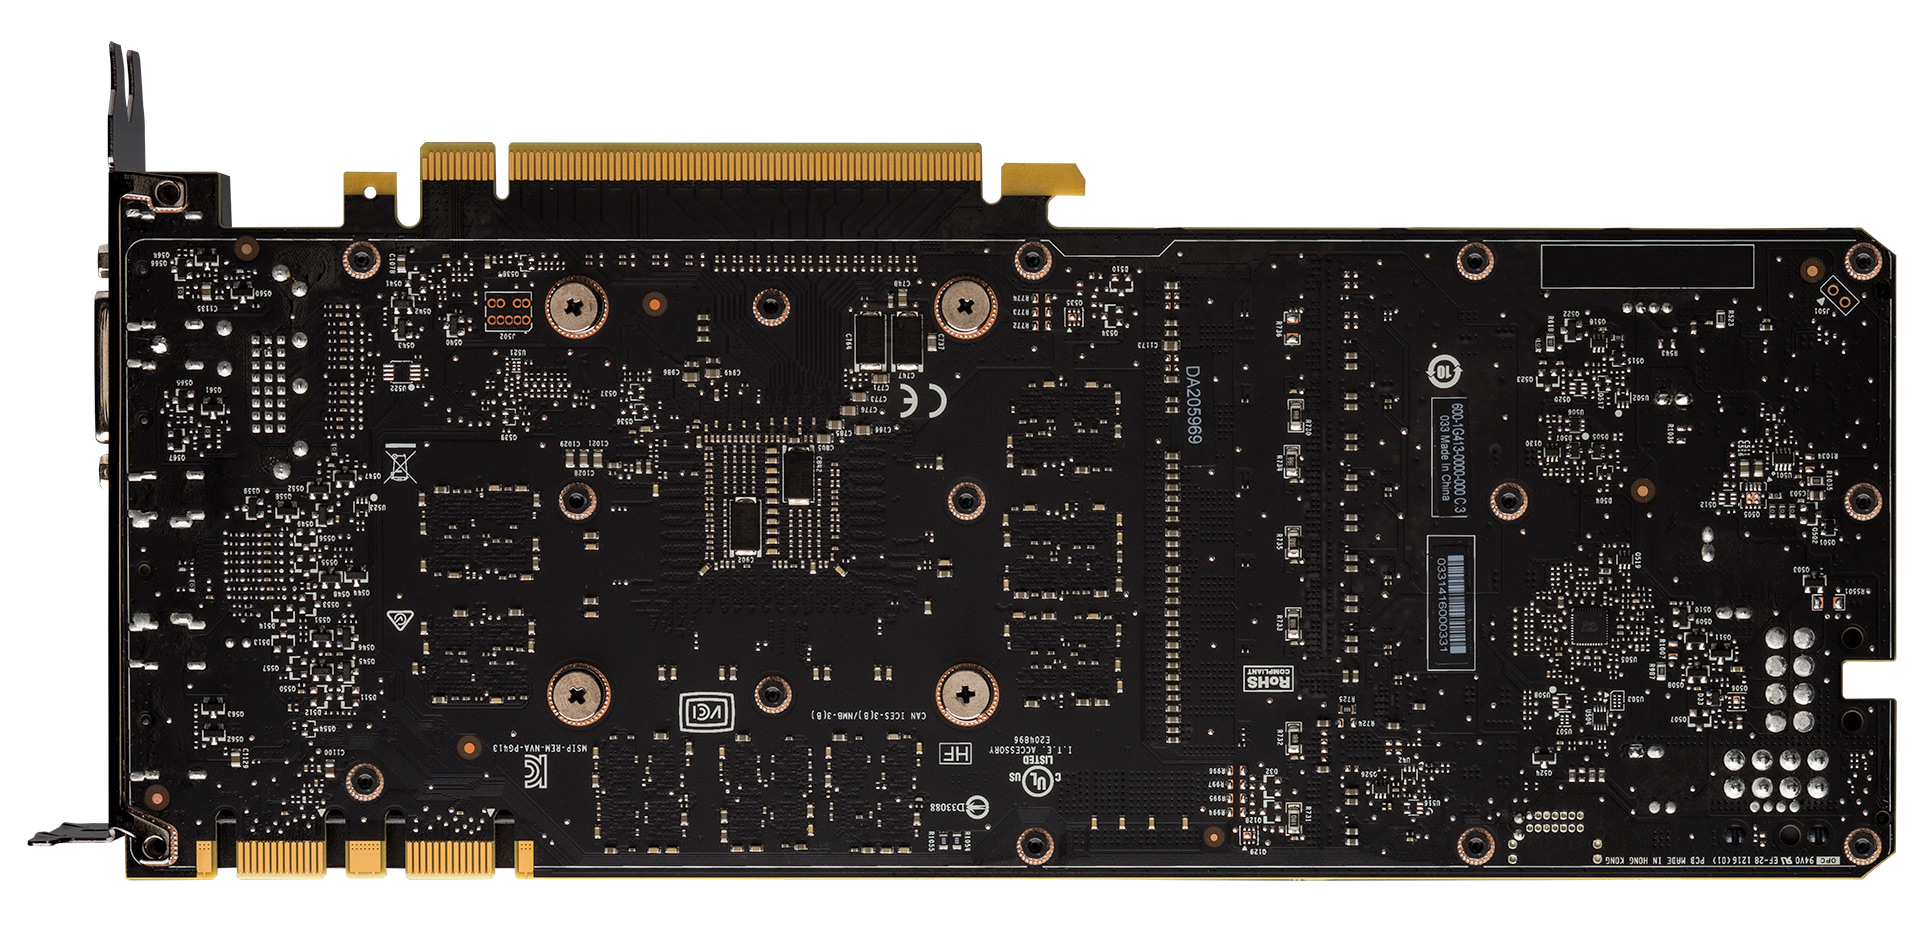 big_geforce-gtx-1080-back-pcb.jpg